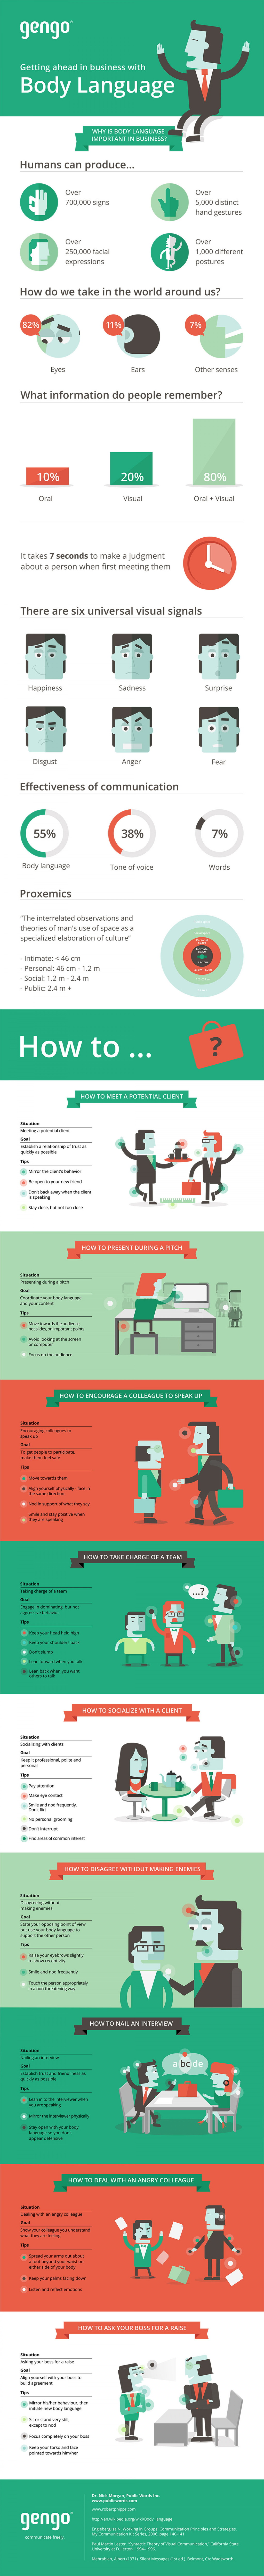 Getting Ahead in Business with Body Language Infographic